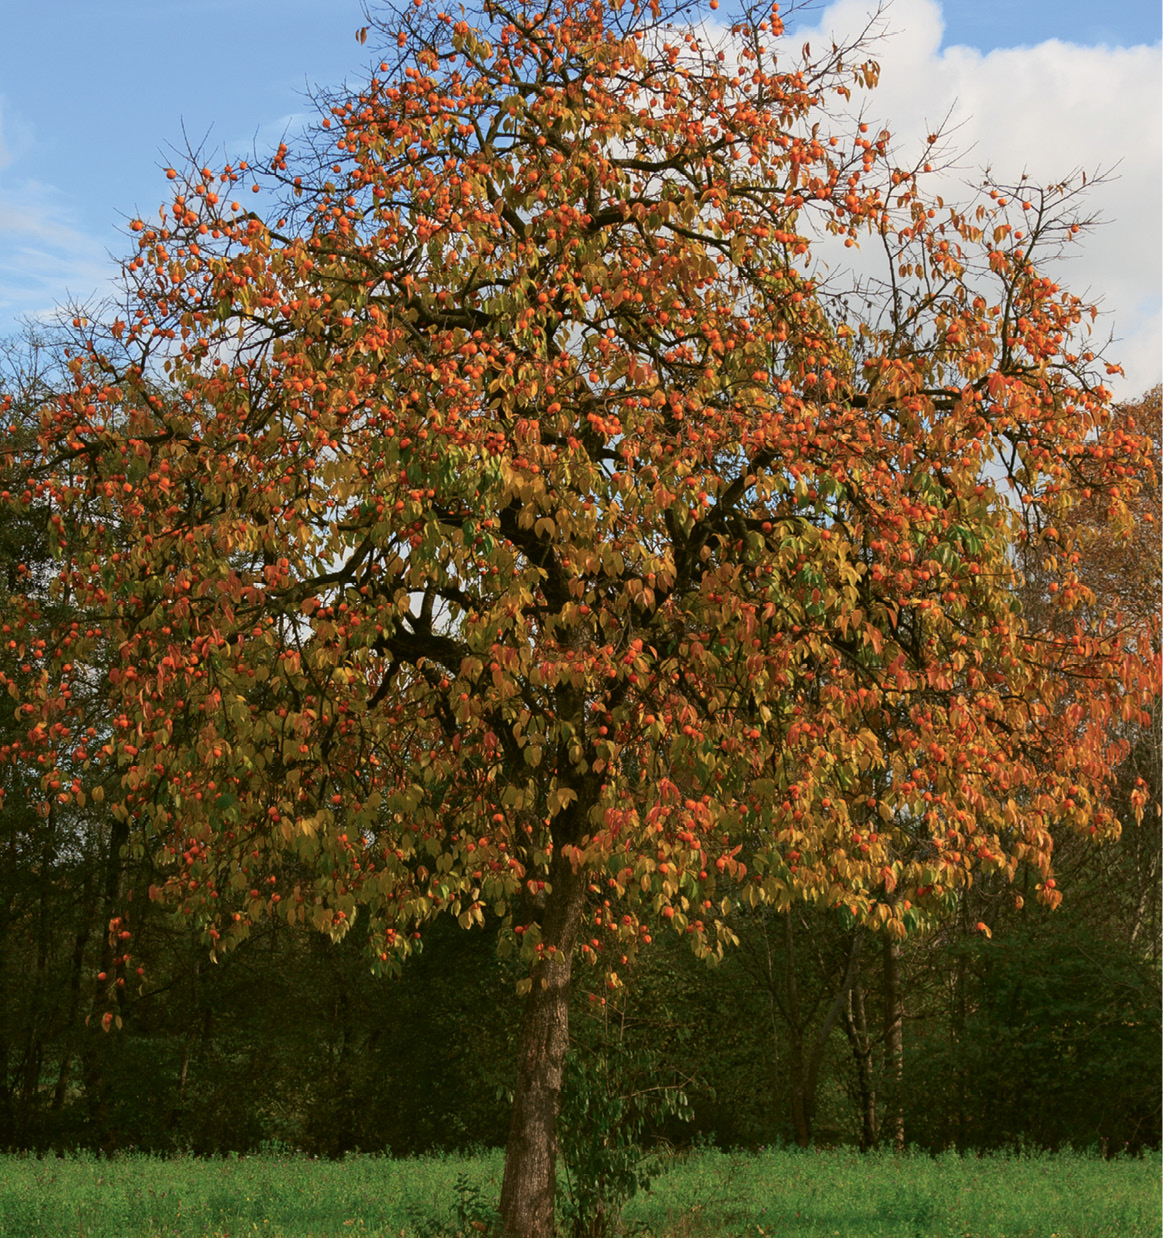 Oriental and American persimmon trees look similar (the latter grows taller).